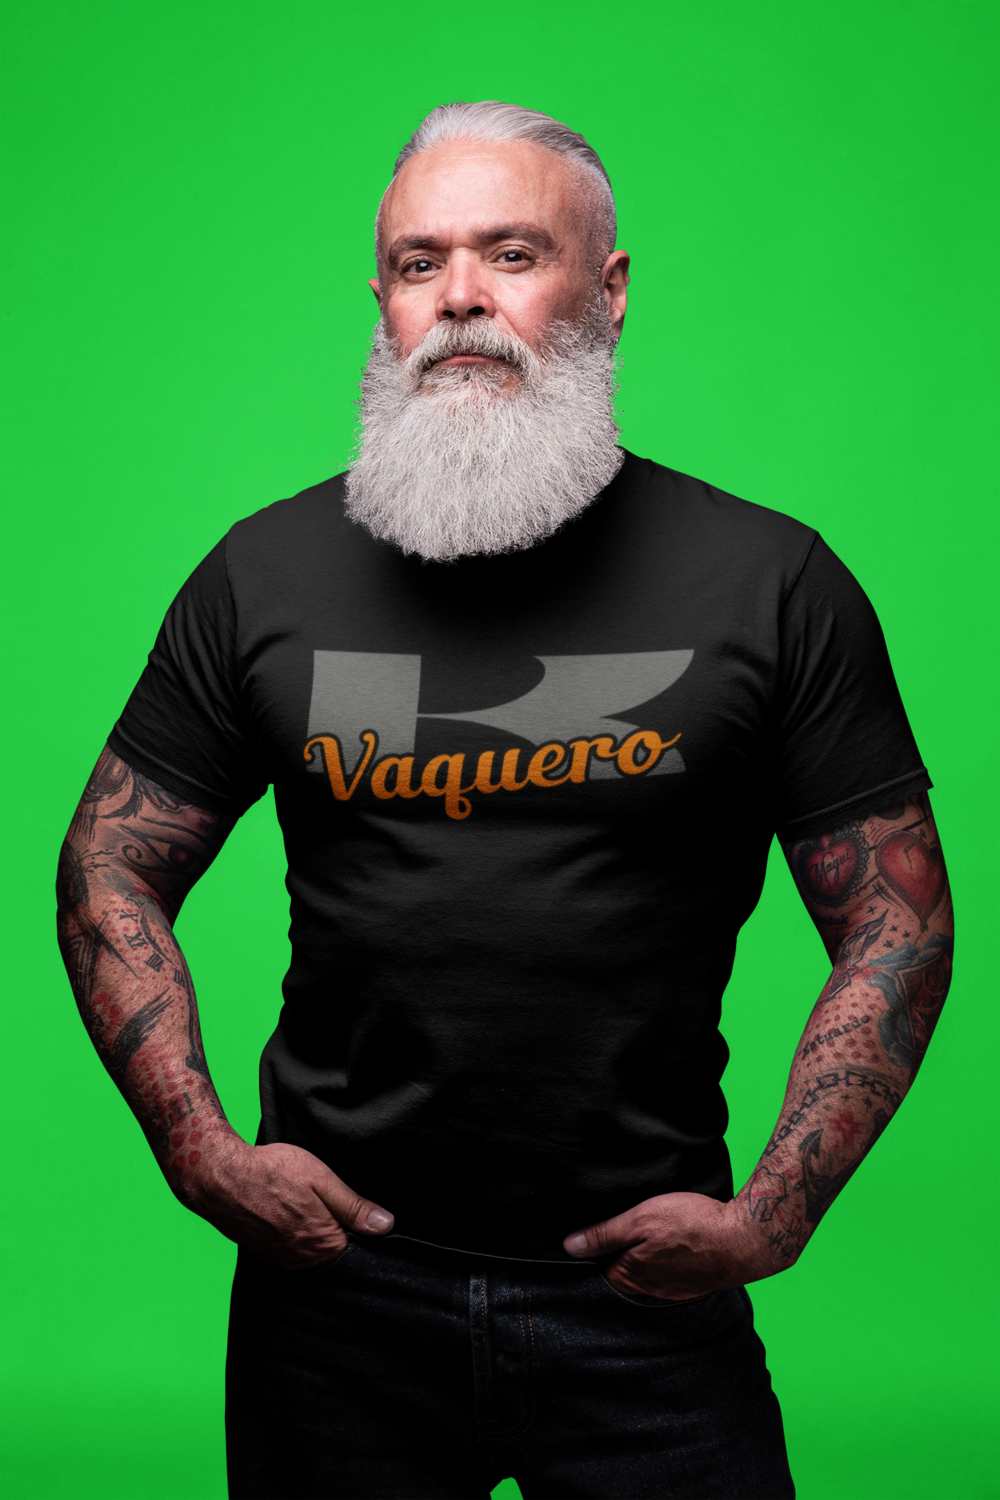 Kawasaki Vaquero T-Shirt (Orange Version)